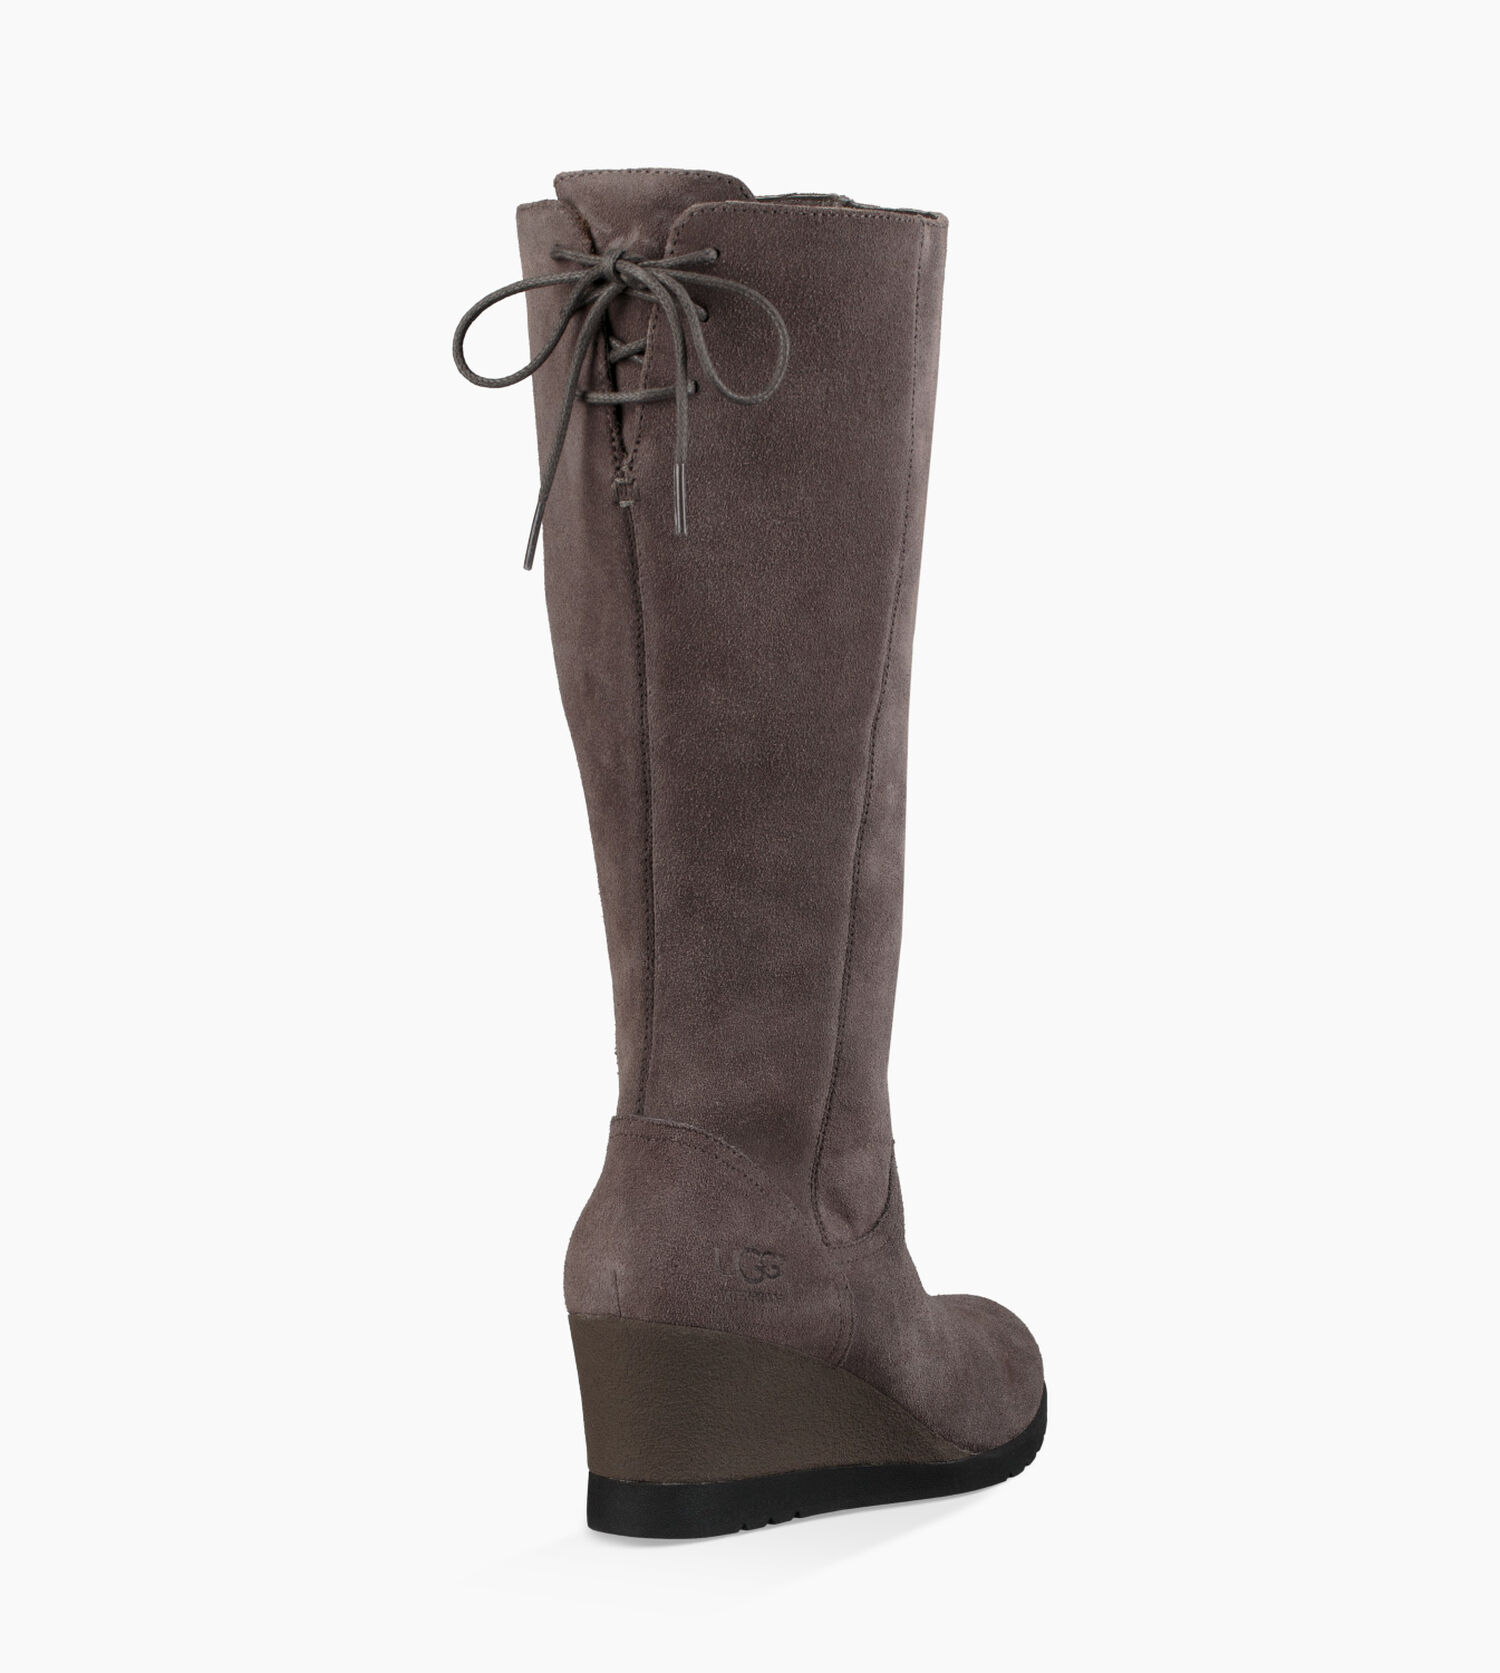 8508f238e84 Women's Share this product Dawna Boot